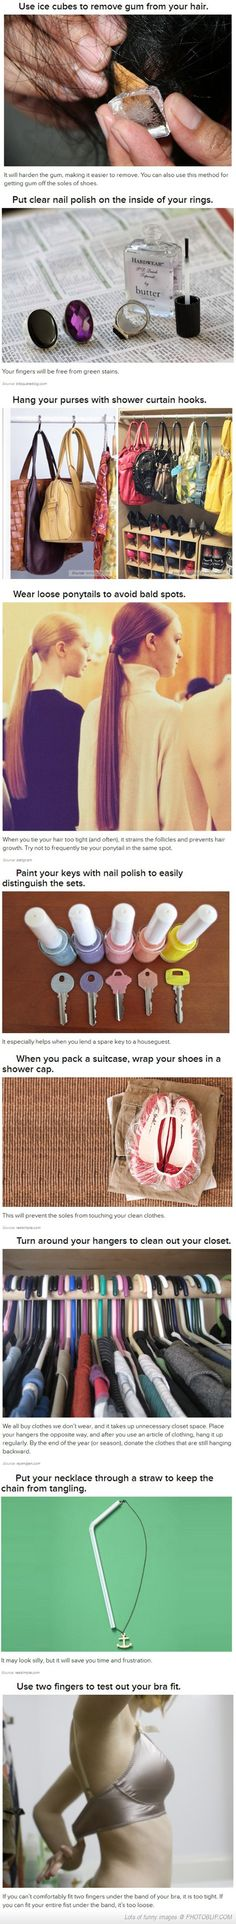 Life Hacks Every Girl Should Really Know About